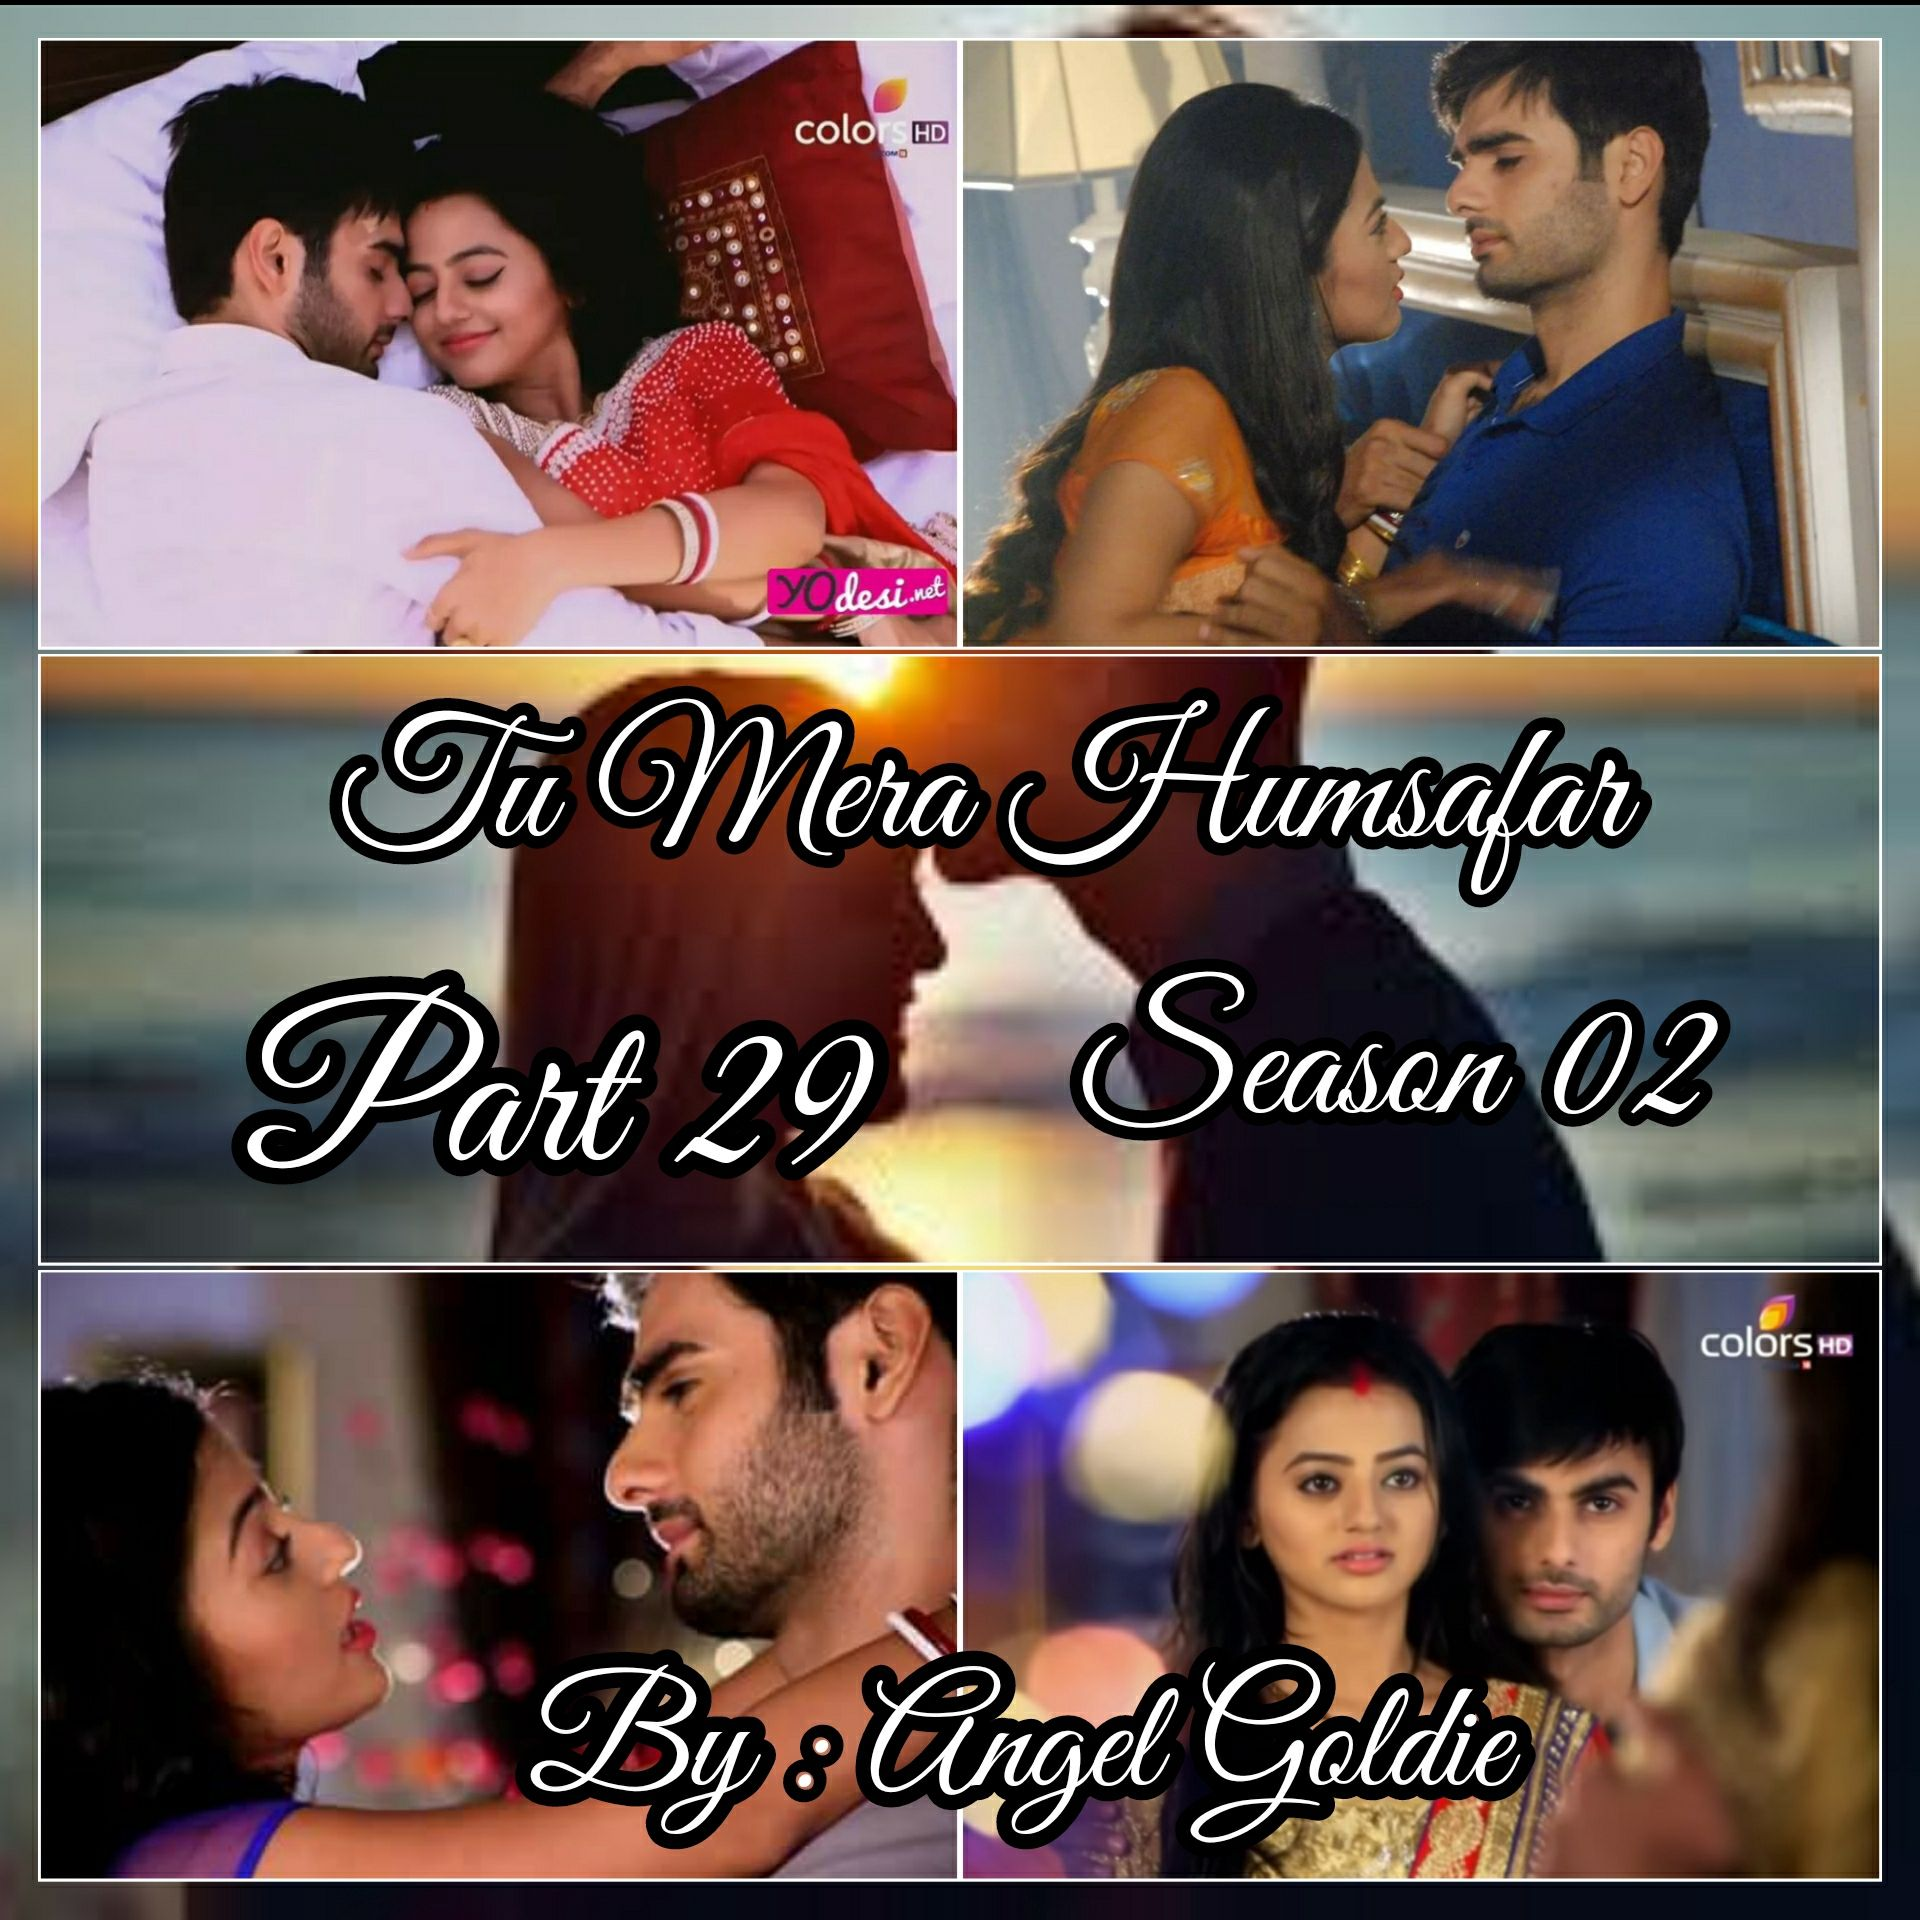 ✓ SwaSan FF : Tu Mera Humsafar Season 02 ( Completed ) ✓ - Part 29